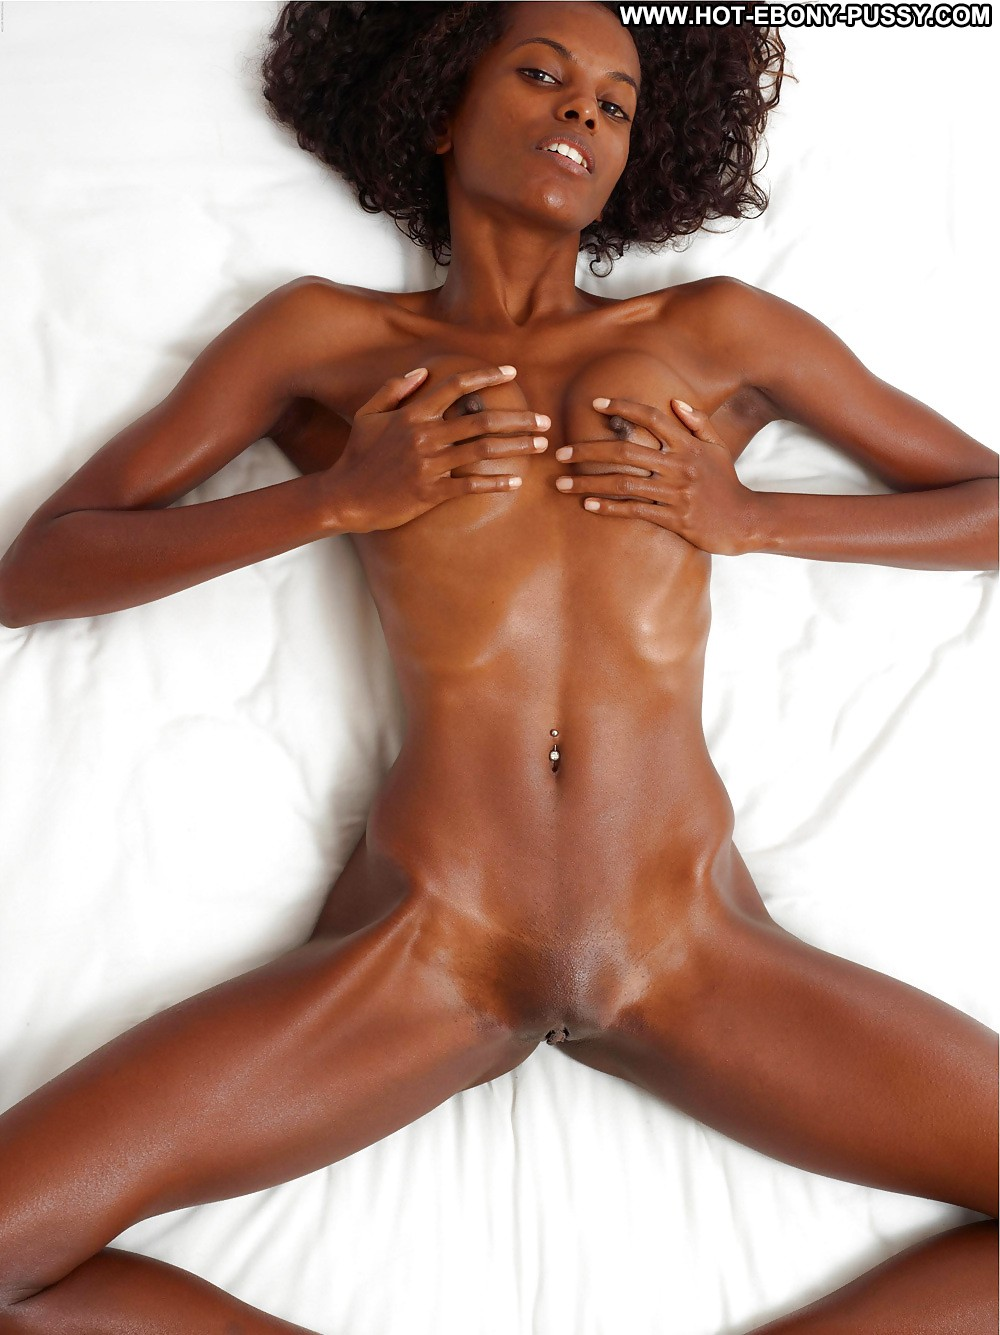 Ana Private Pics Ebony Black Ethnic Mature Amateur-2567